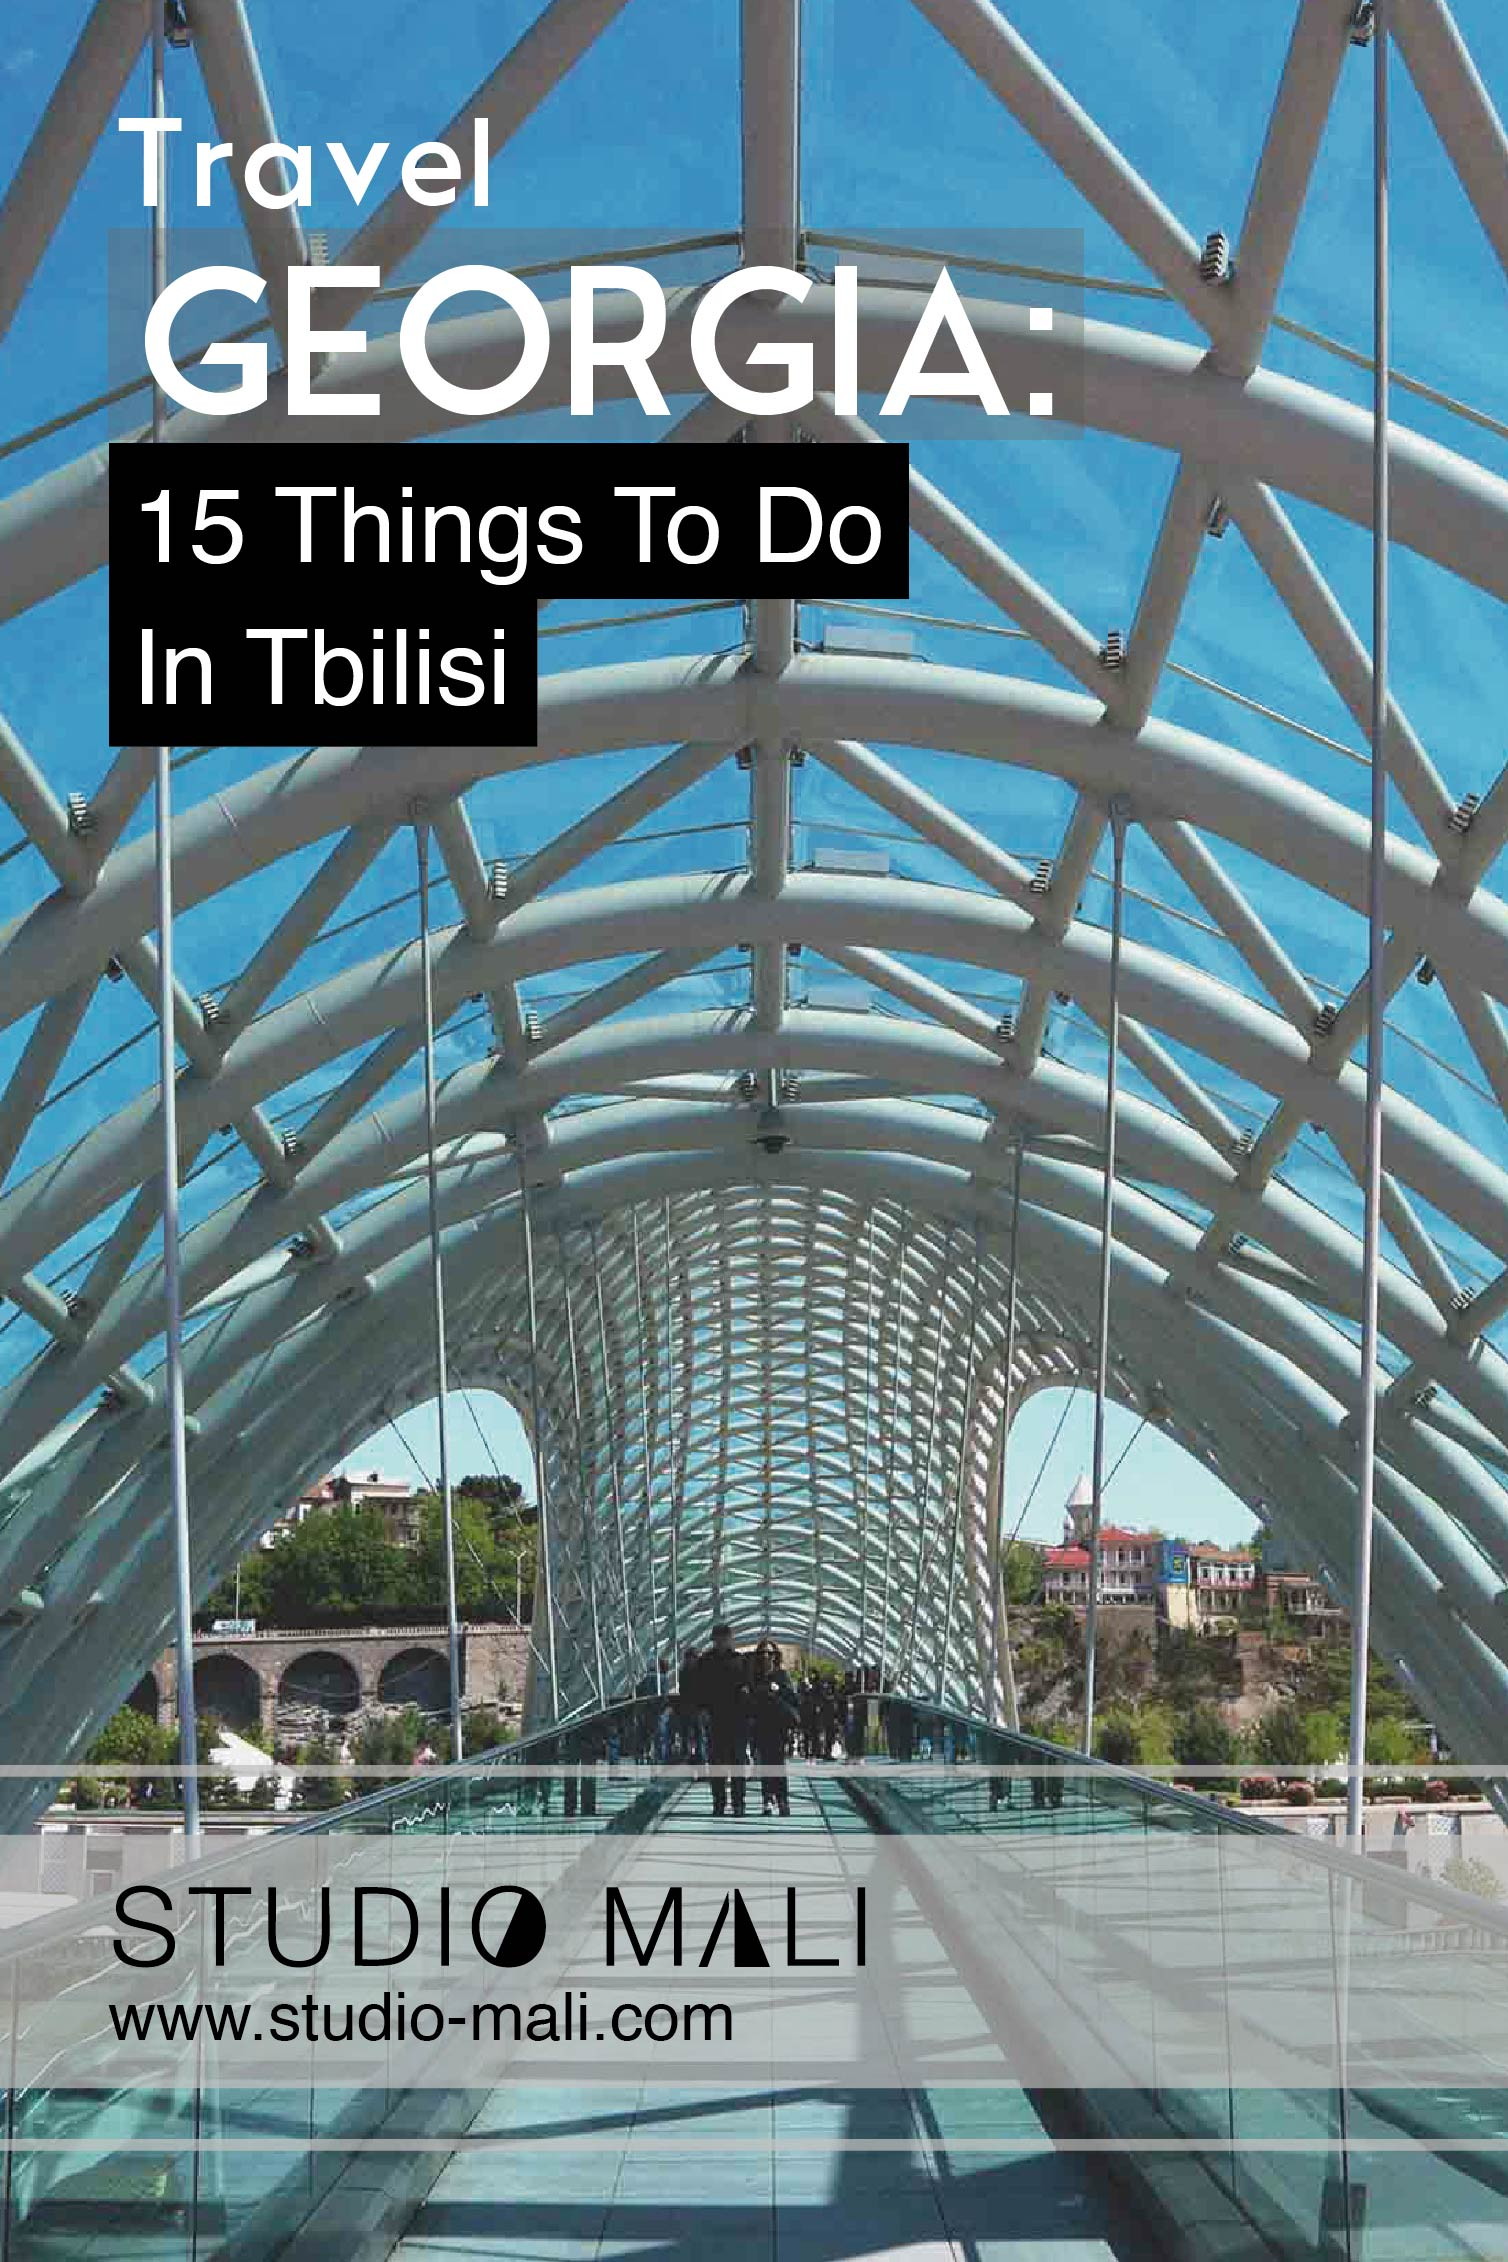 Georgia - 15 Things To Do In Tbilisi, by Studio Mali